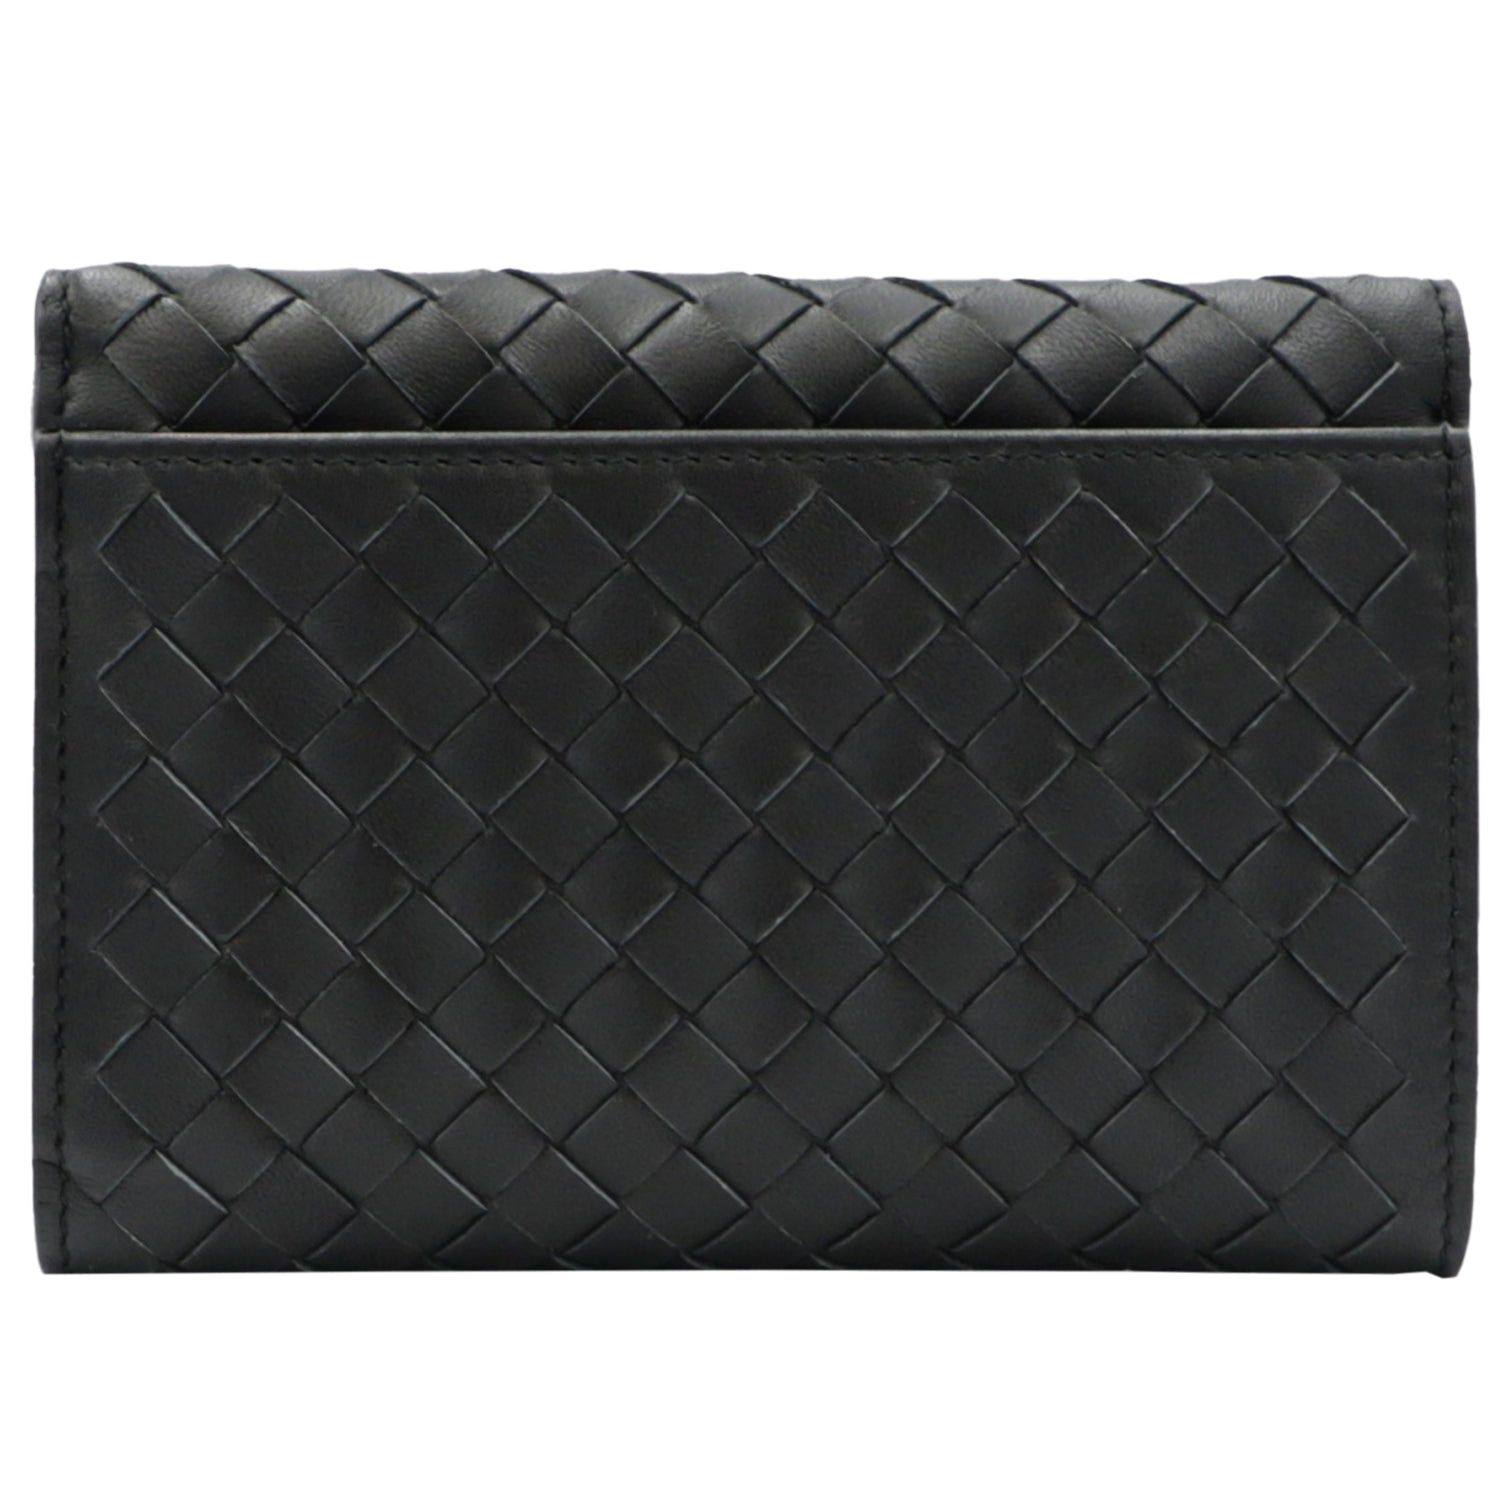 Black Braided Nappa Continental Wallet | Shop BOTTEGA VENETA Online India